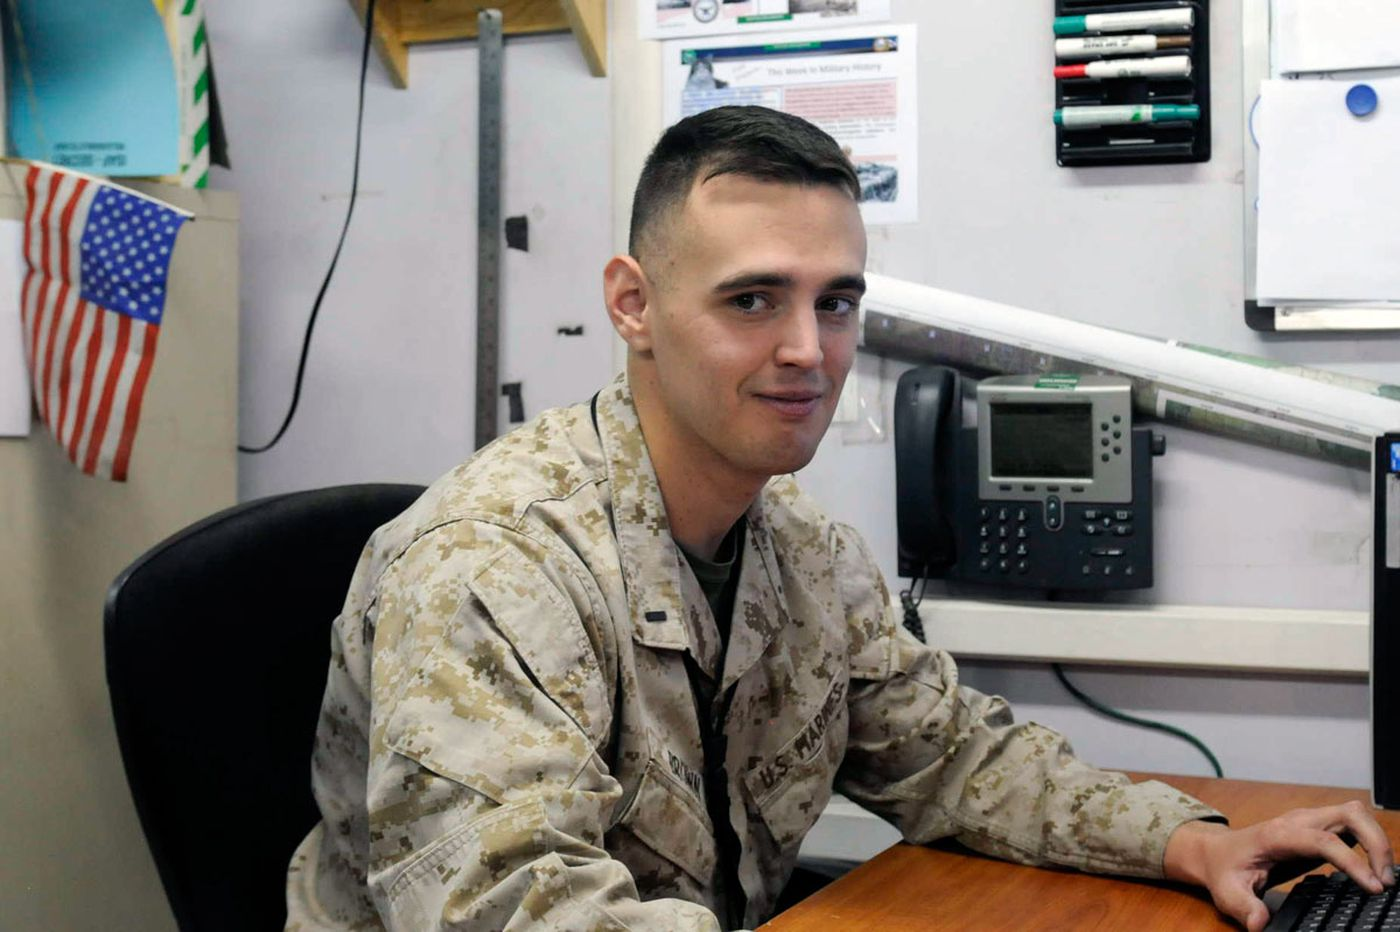 Montco man fulfilling his dreams in the Marines